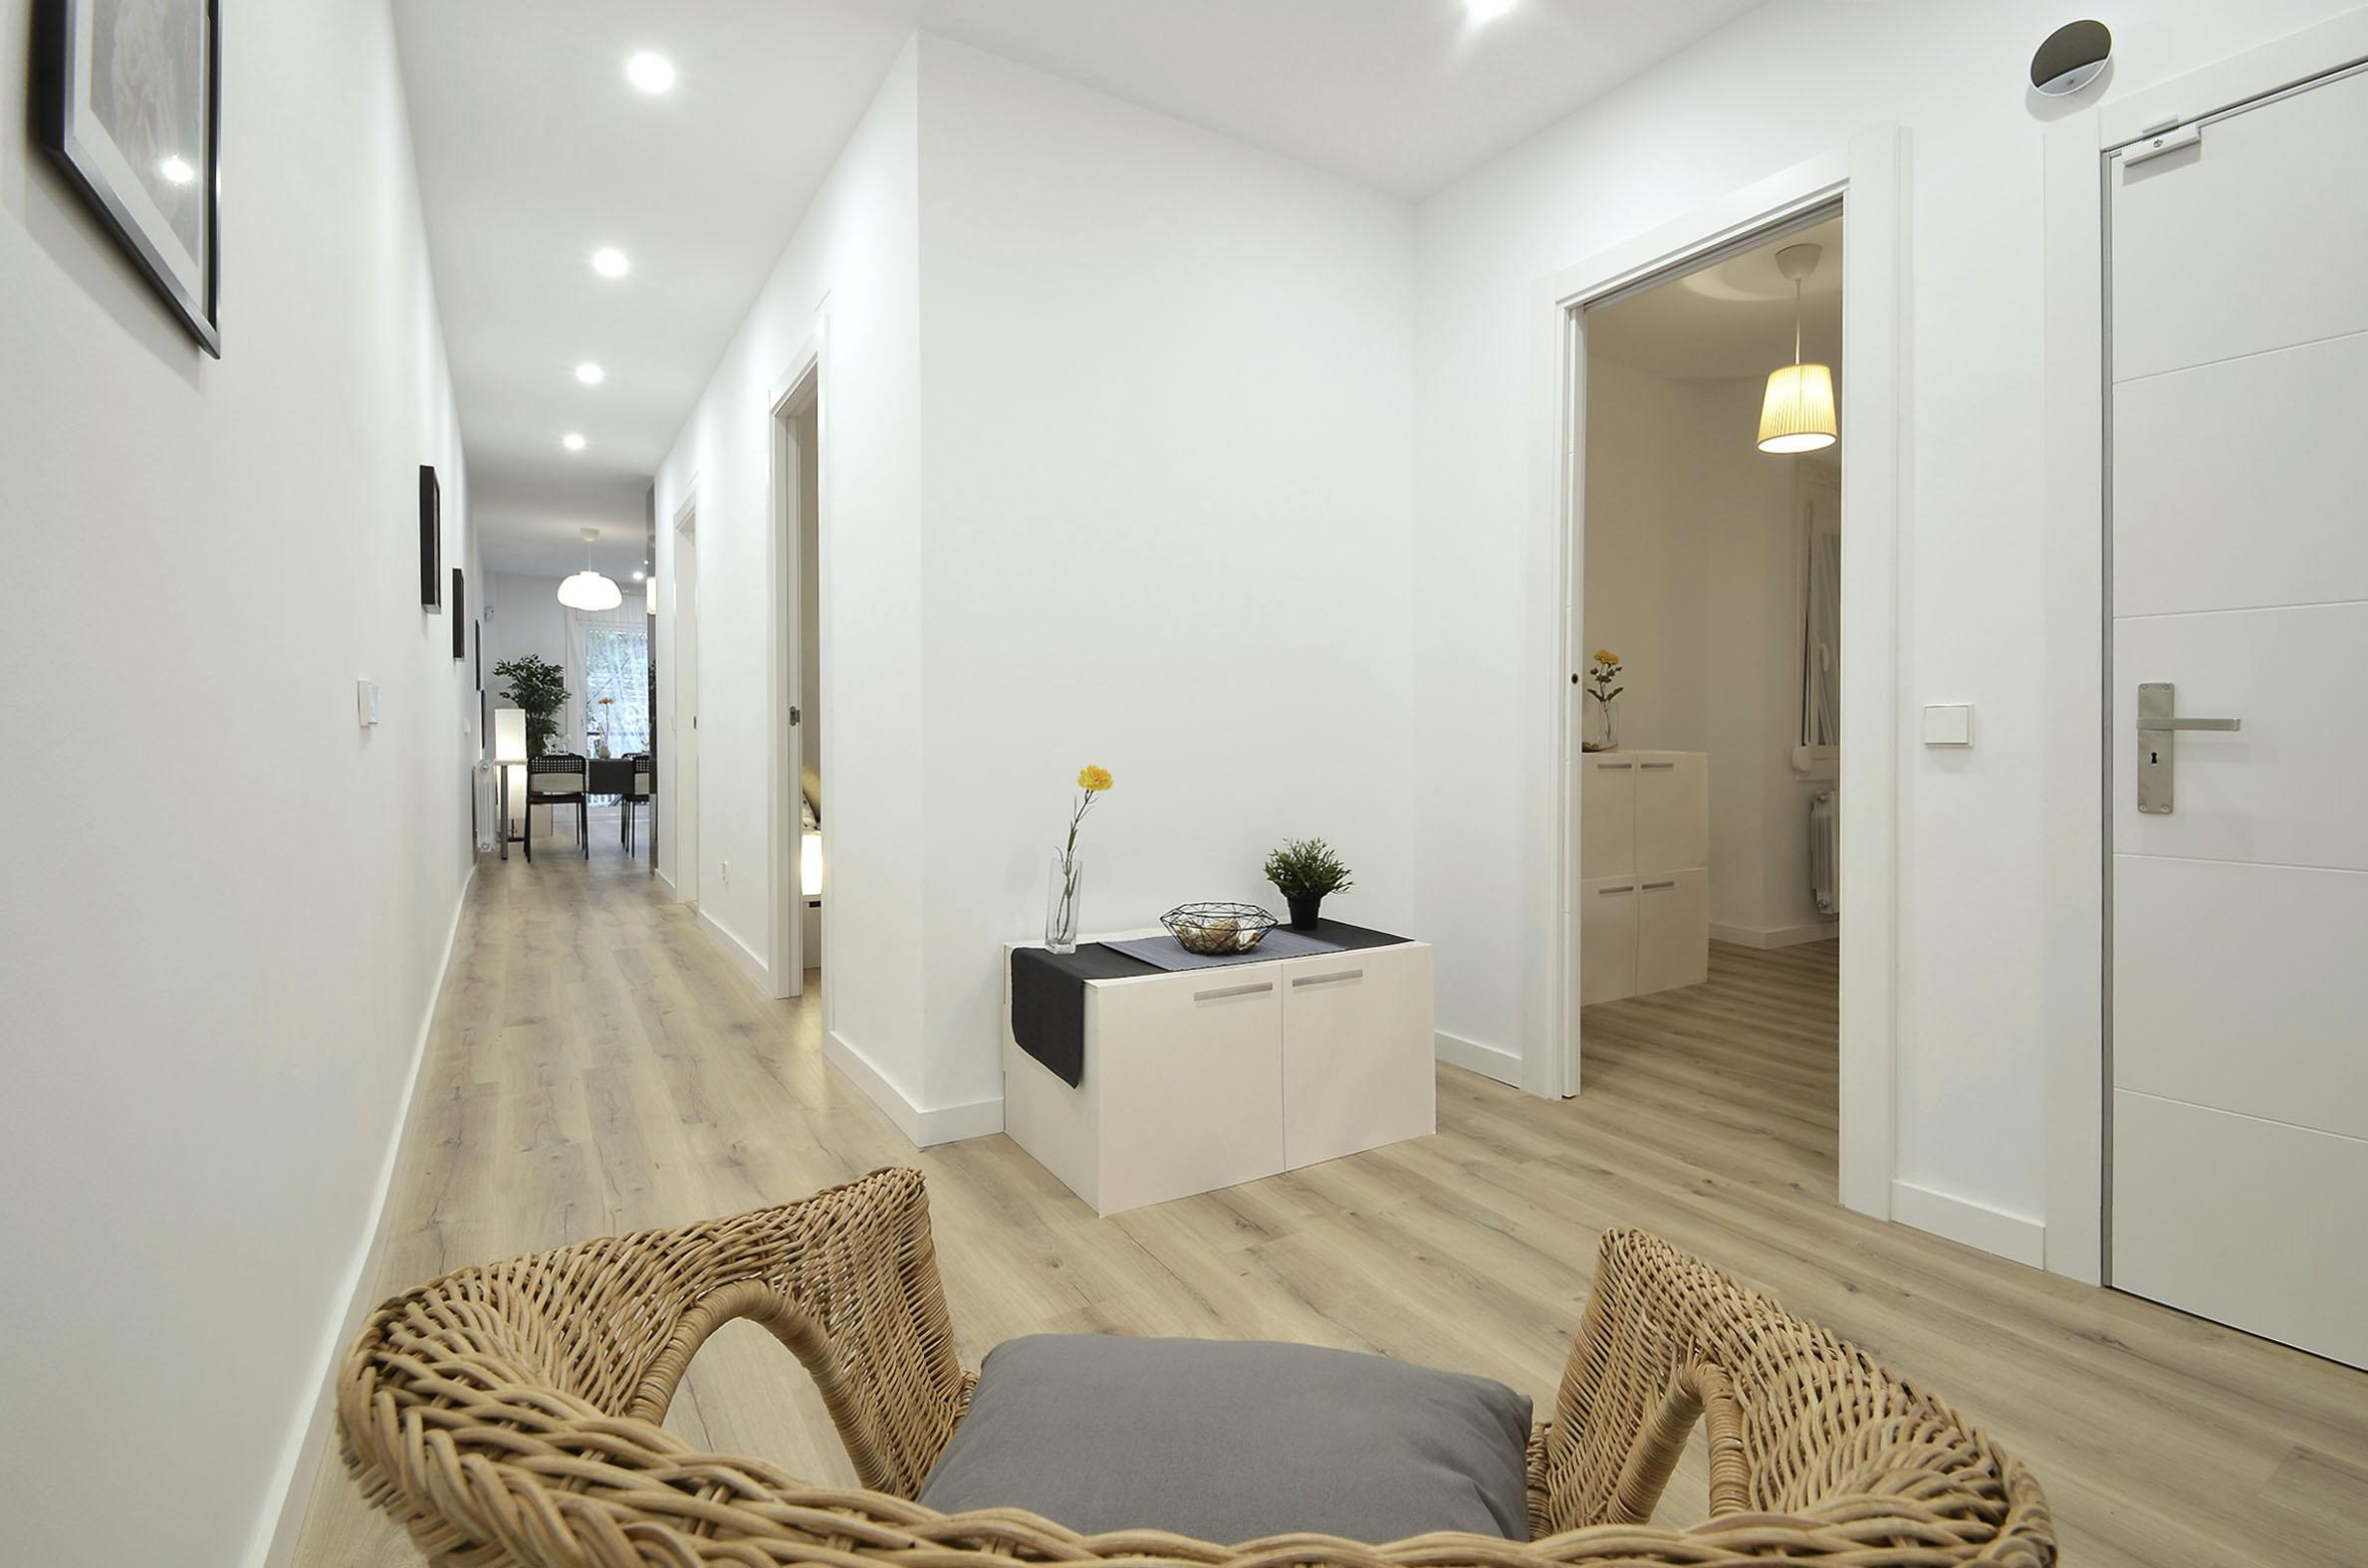 245687 Flat for sale in Eixample, Fort Pienc 7